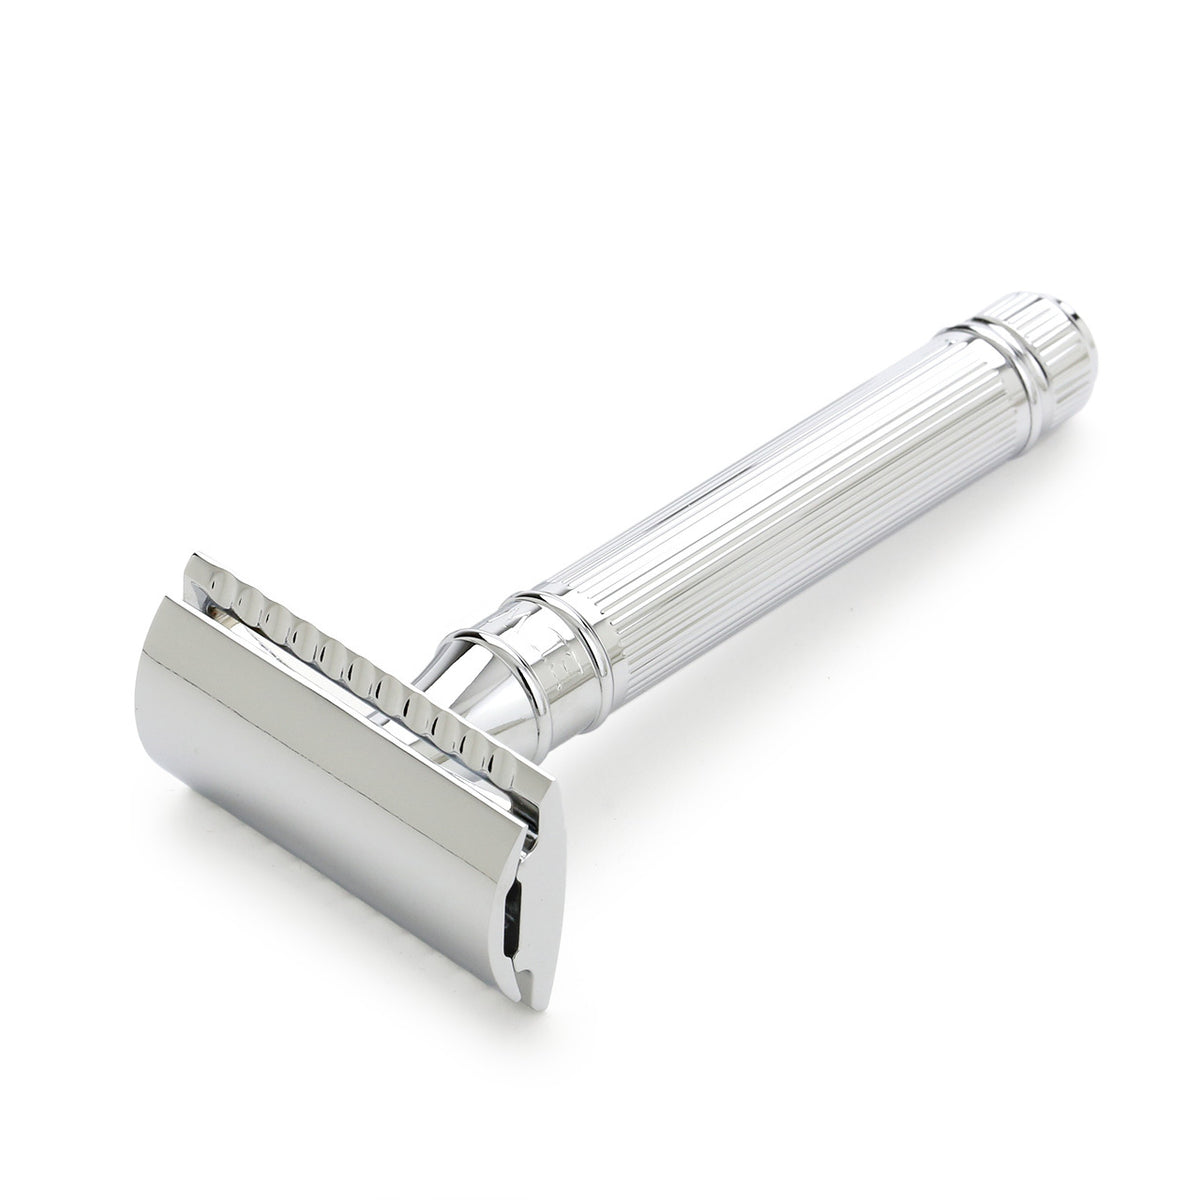 Edwin Jagger Chrome Lined DE89 Safety Razor